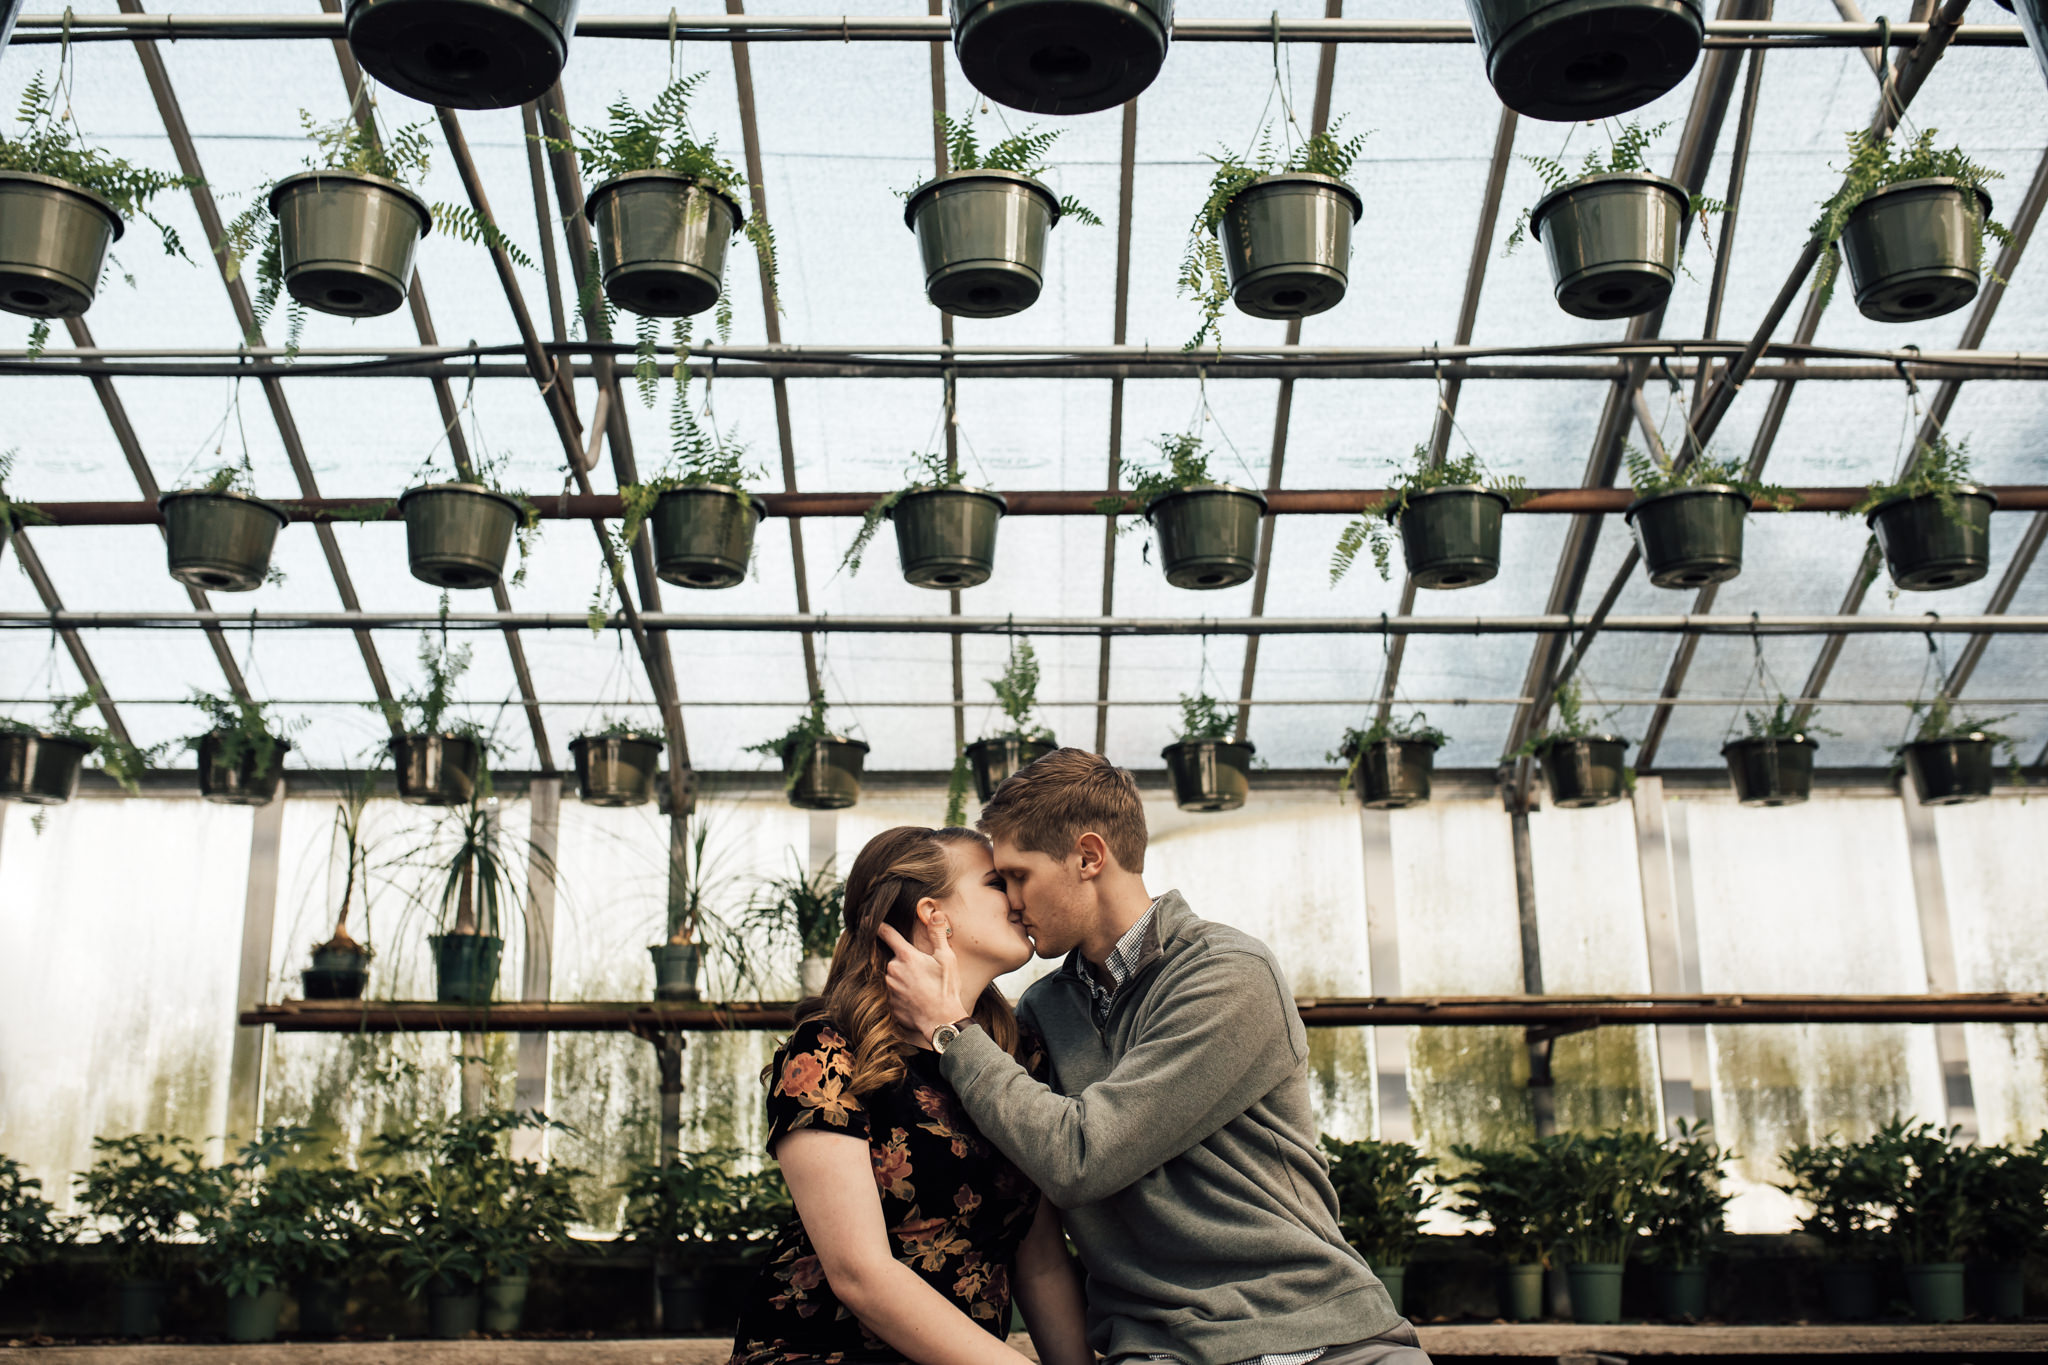 memphis-wedding-photographer-greenhouse-engagement-pictures-cassie-cook-photography-5.jpg